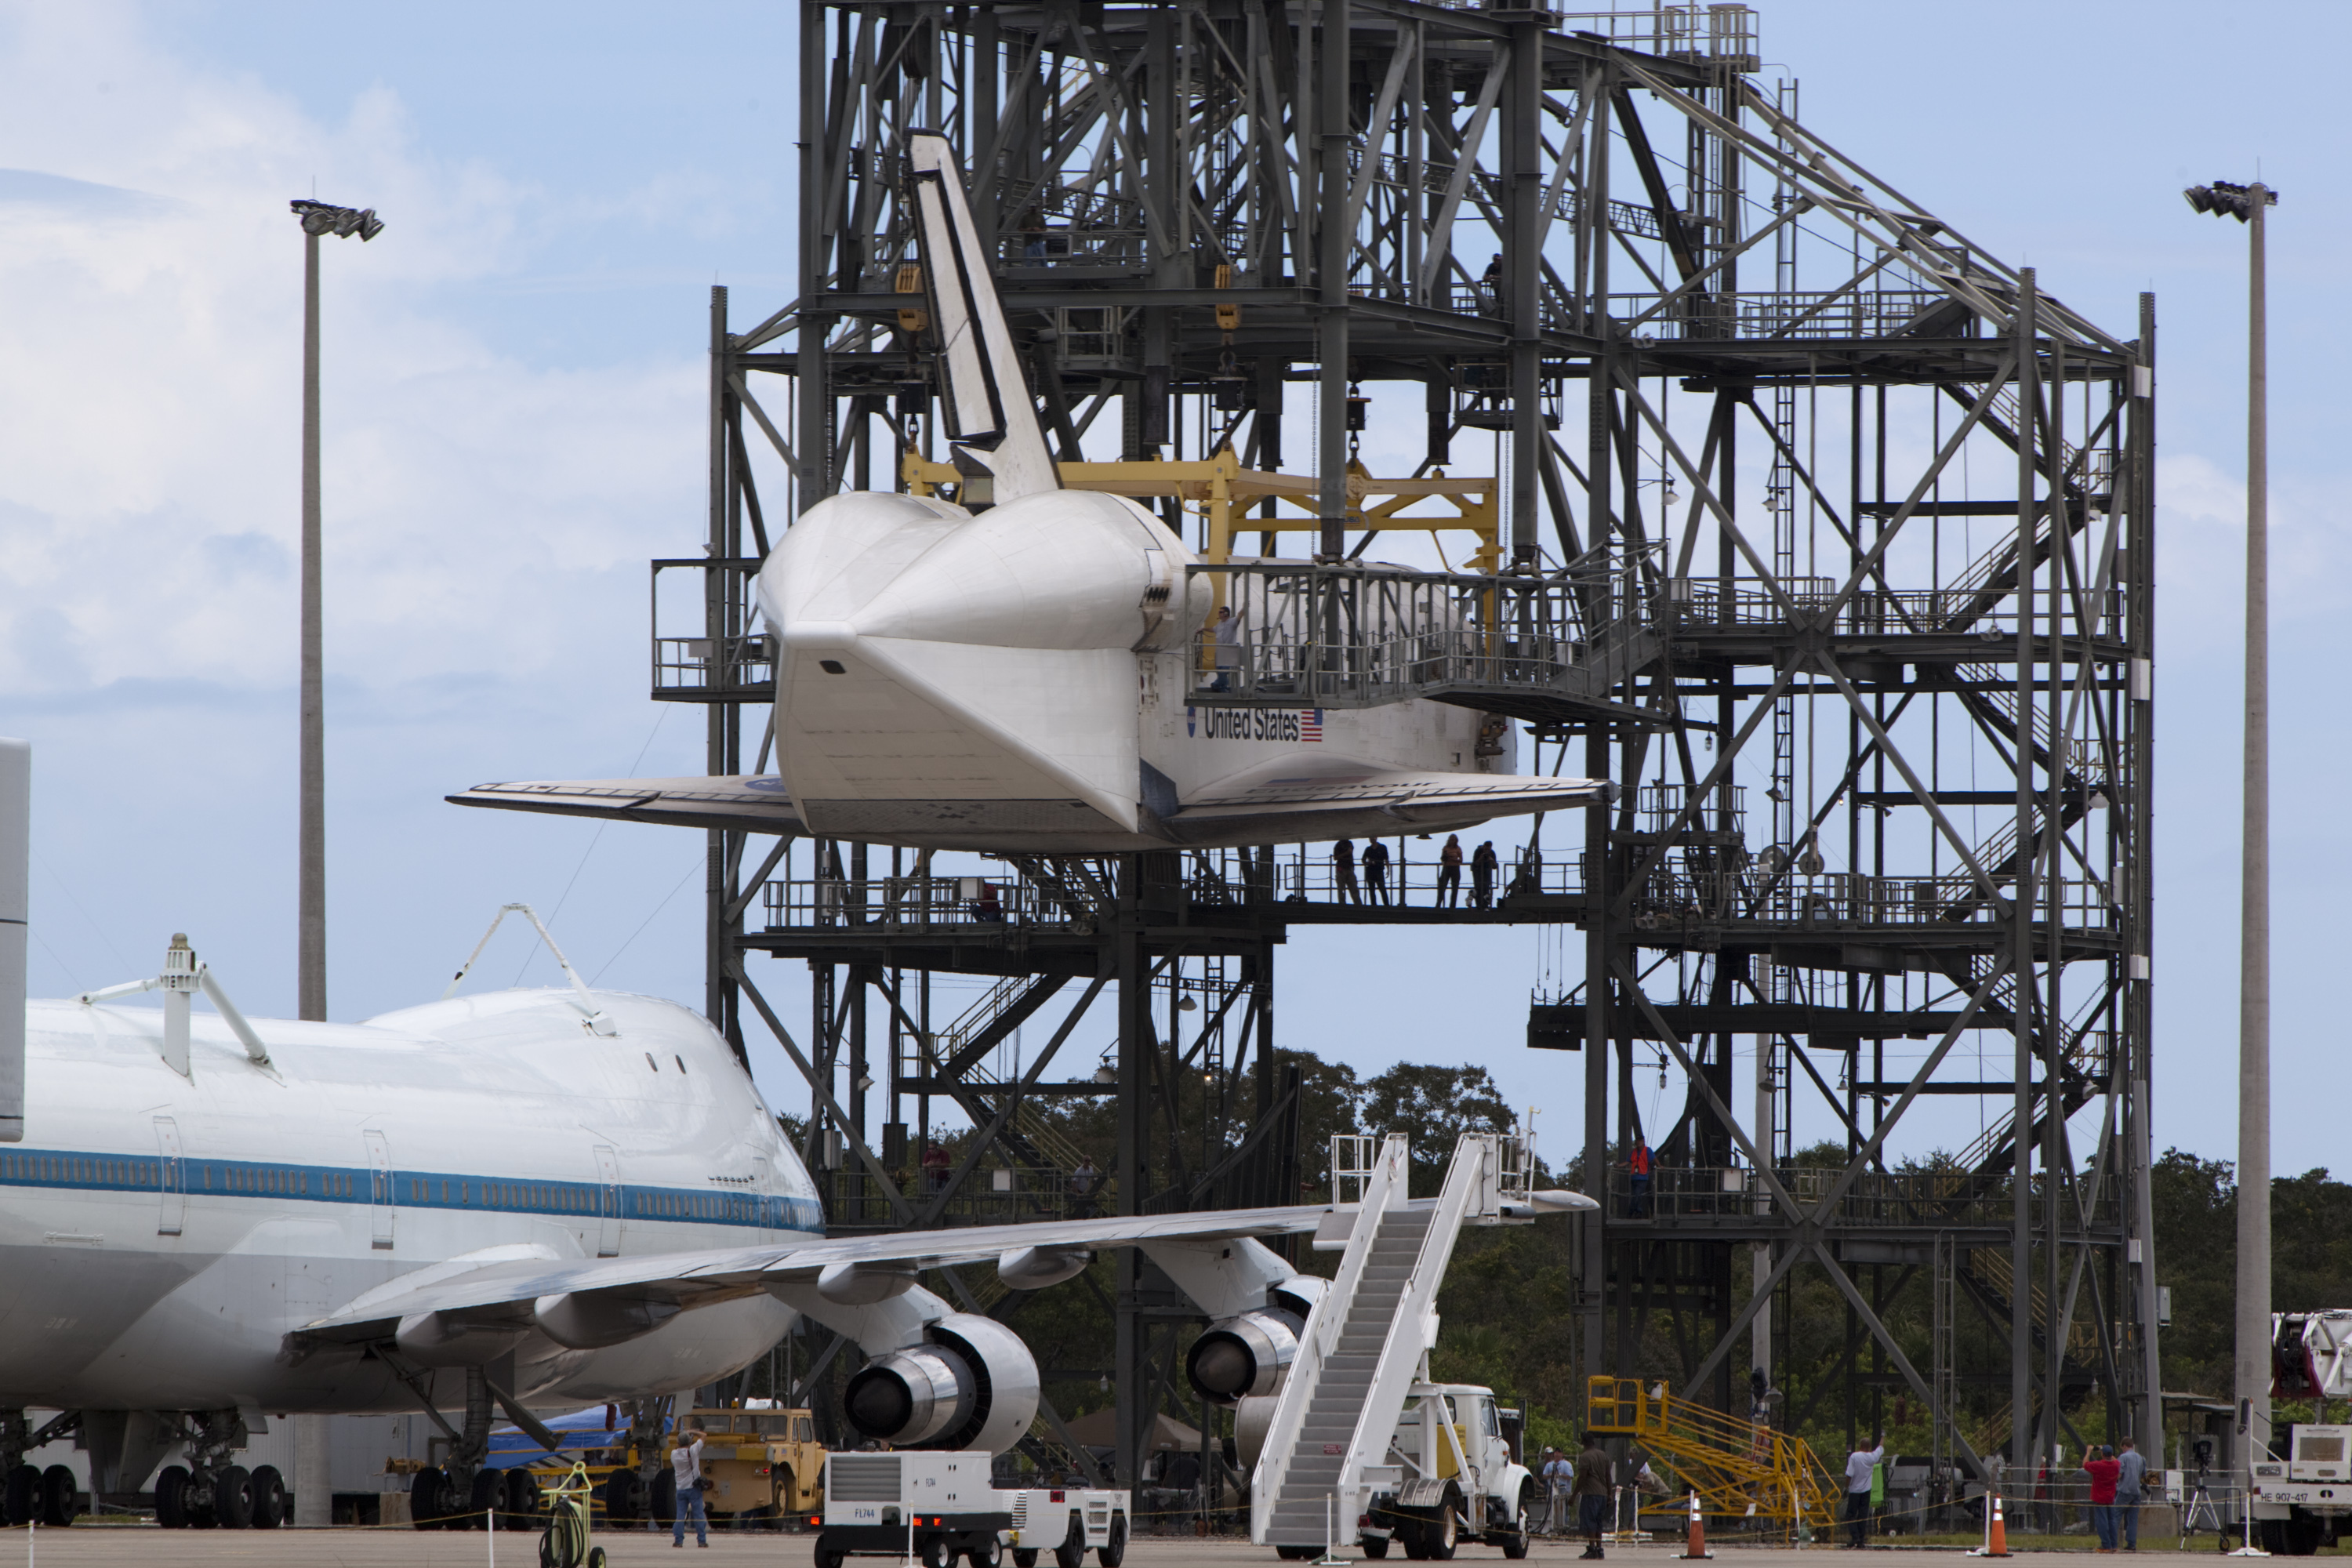 Shuttle Endeavour Attached to 747